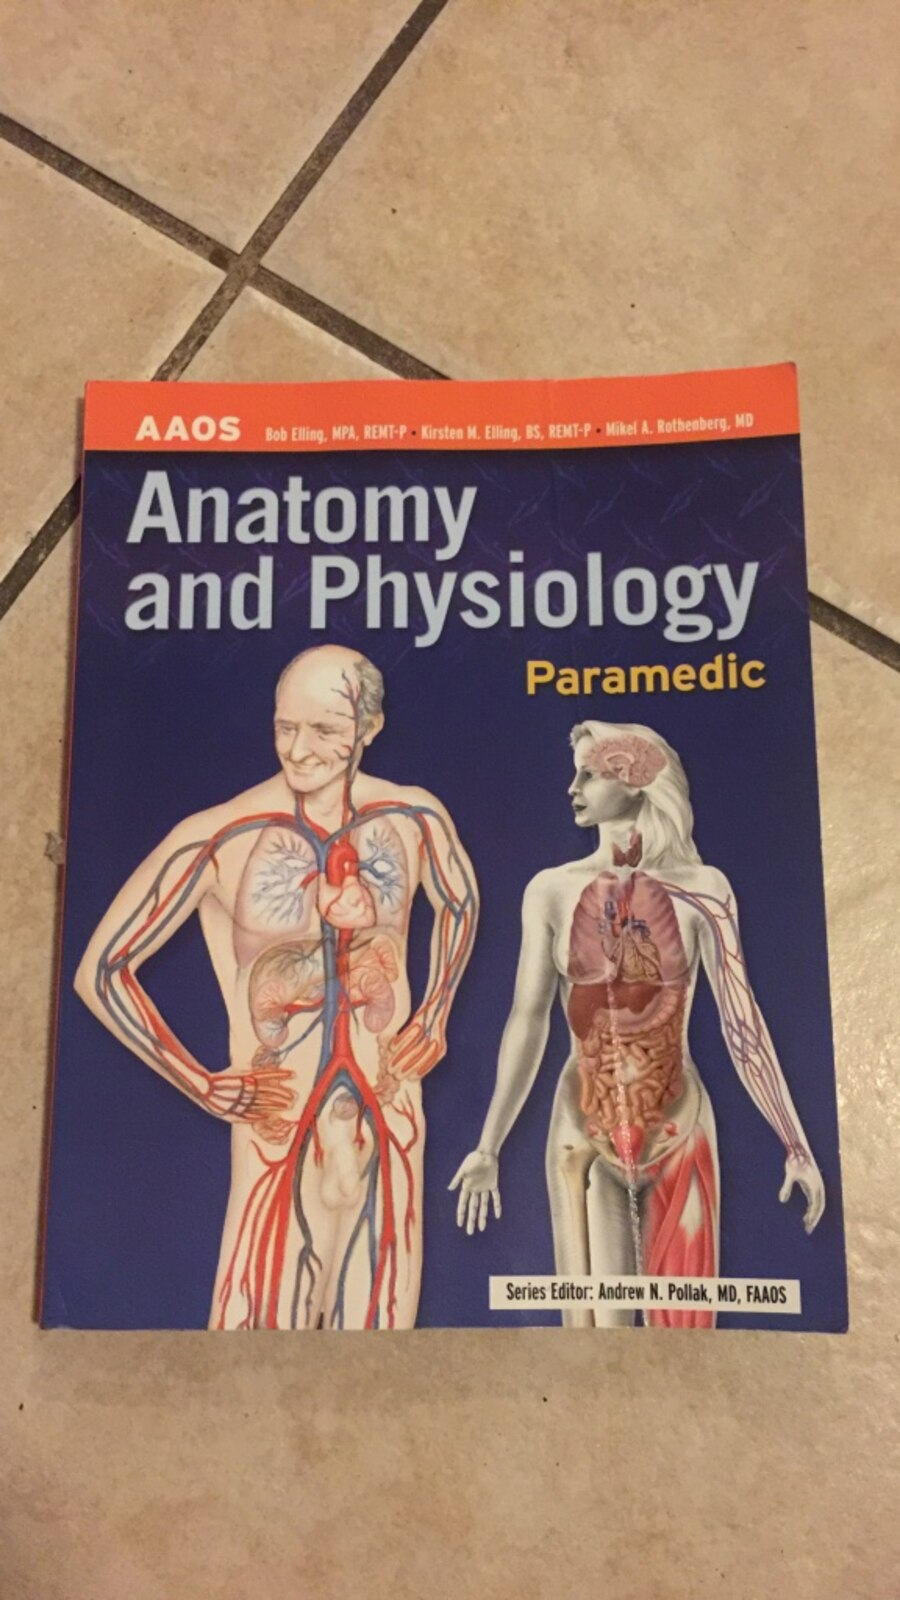 Used Anatomy and Physiology paramedic soft cover textbook. in Miami ...